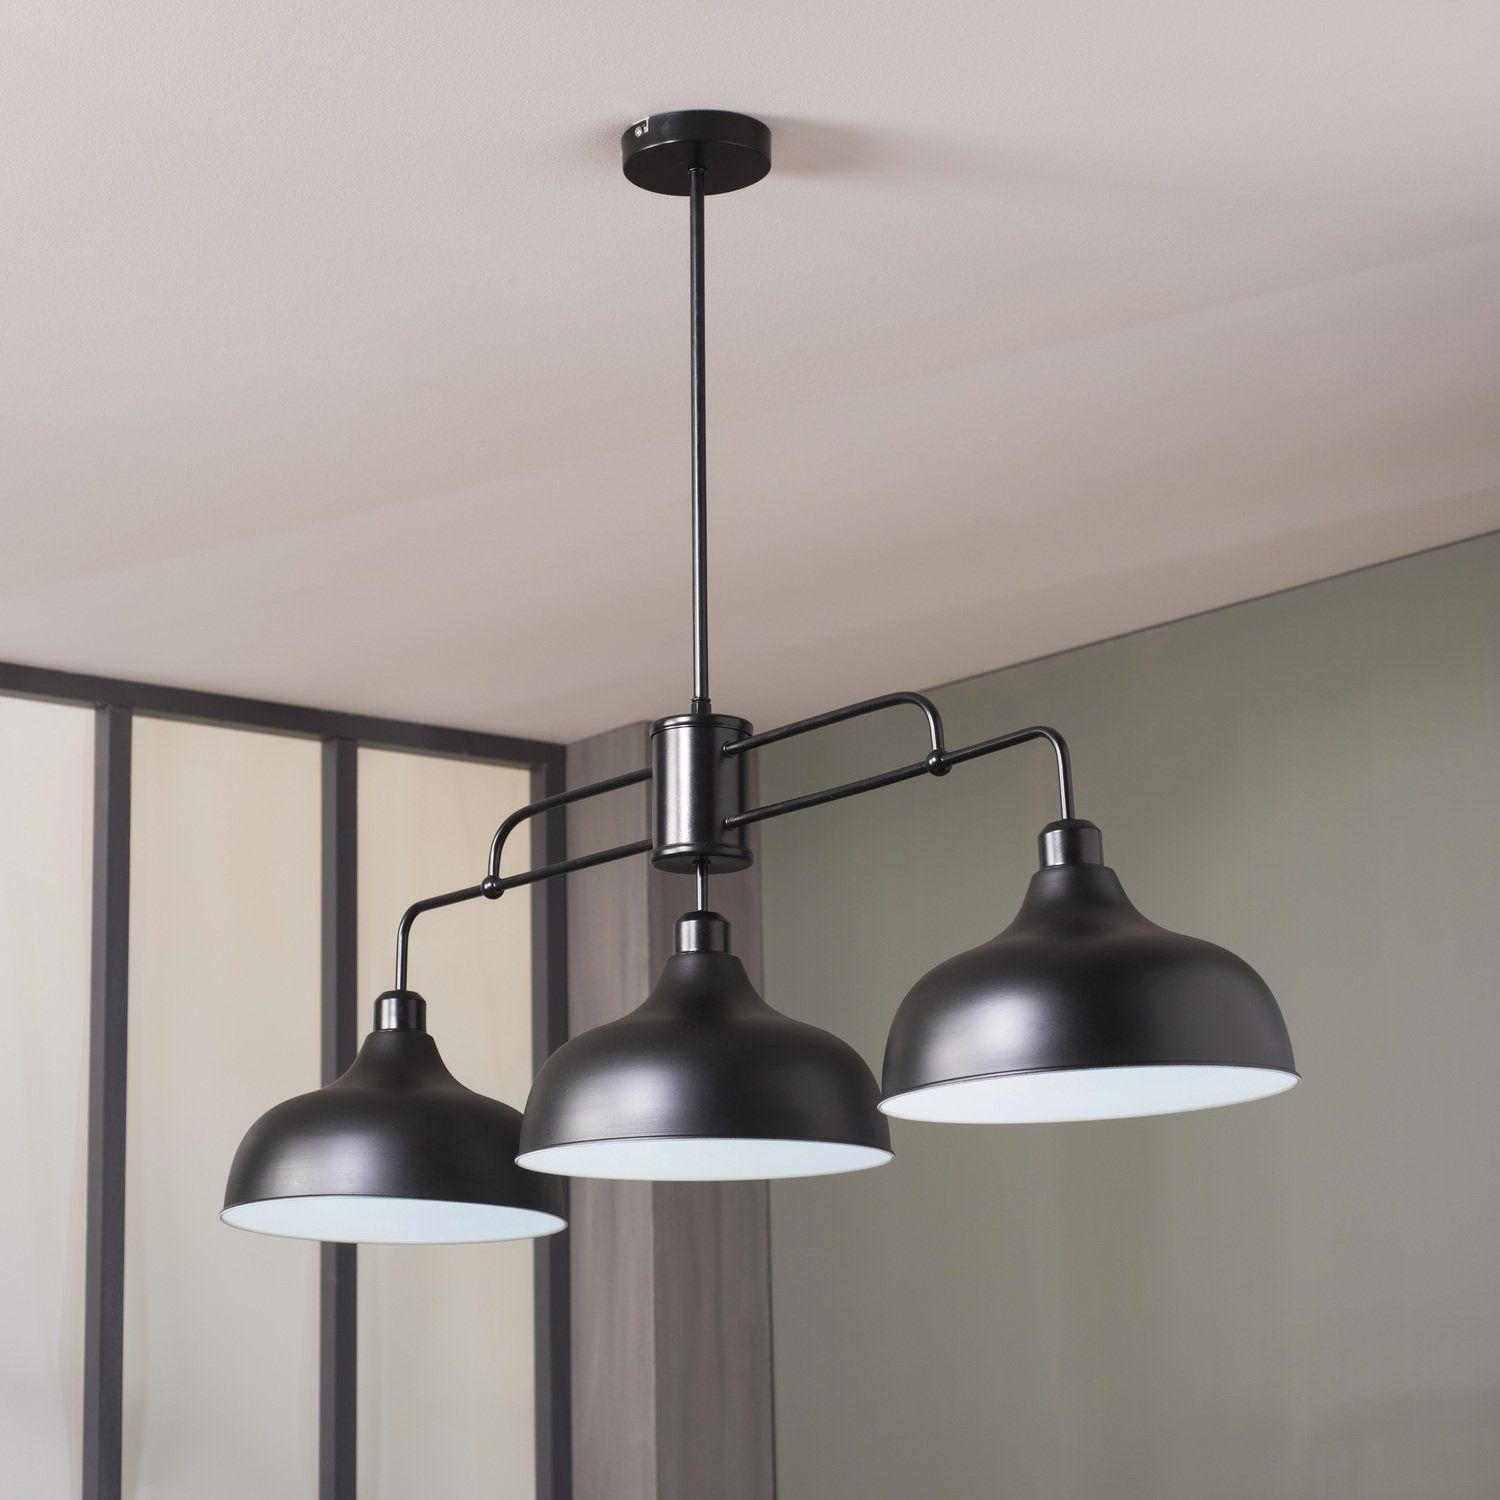 cette suspension design adopte un style rsolument industriel suspension cuisine eclairage dco - Suspension Luminaire Style Industriel